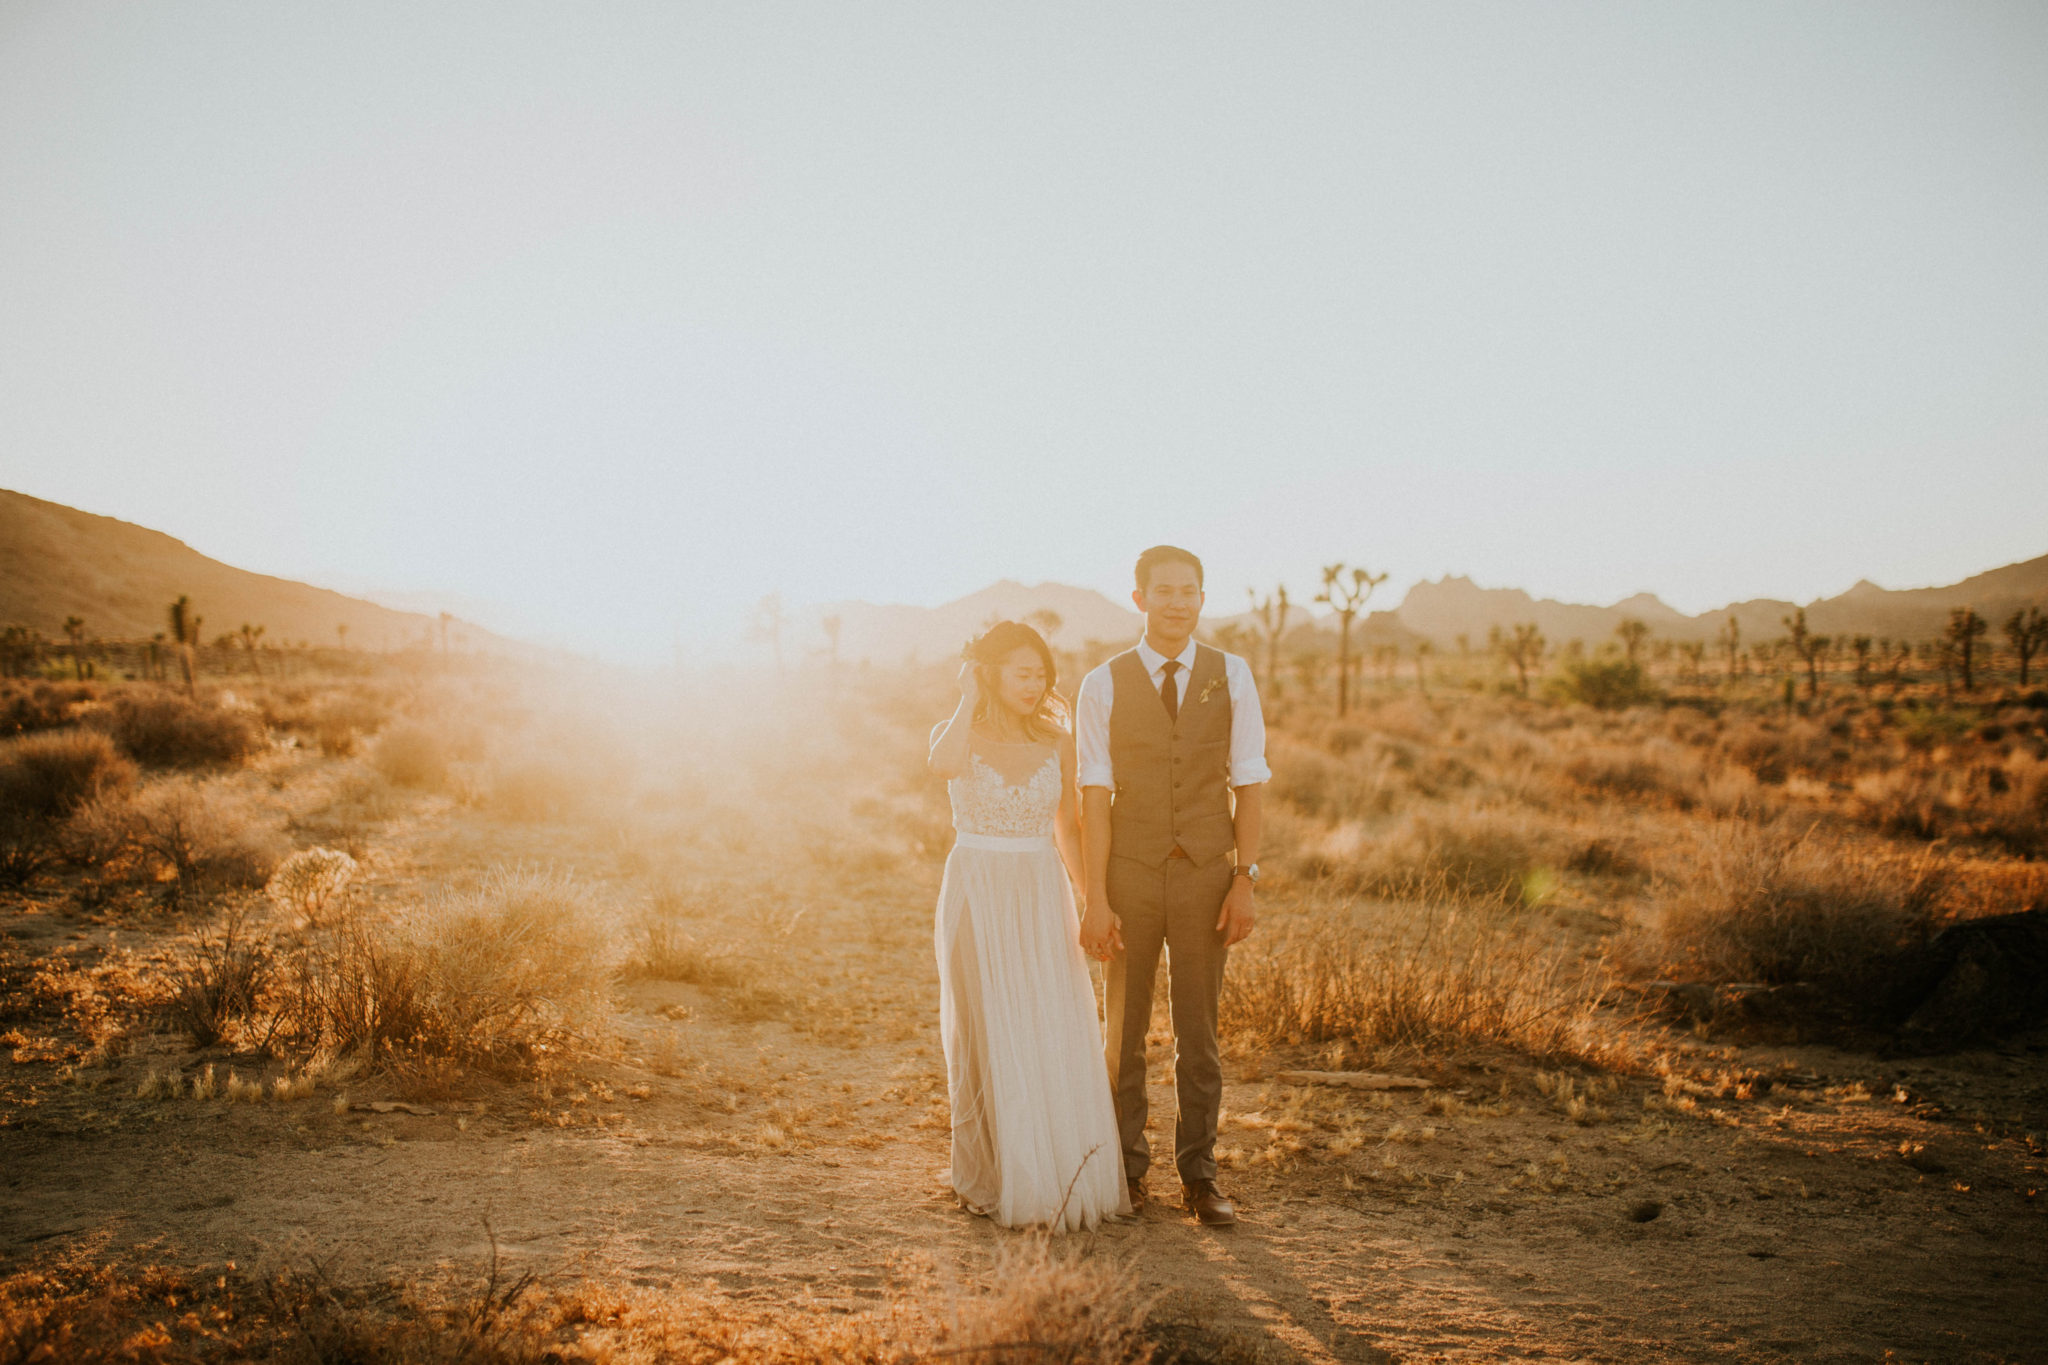 Mandy & Joey Joshua Tree Elopement California Wedding Photographer-232